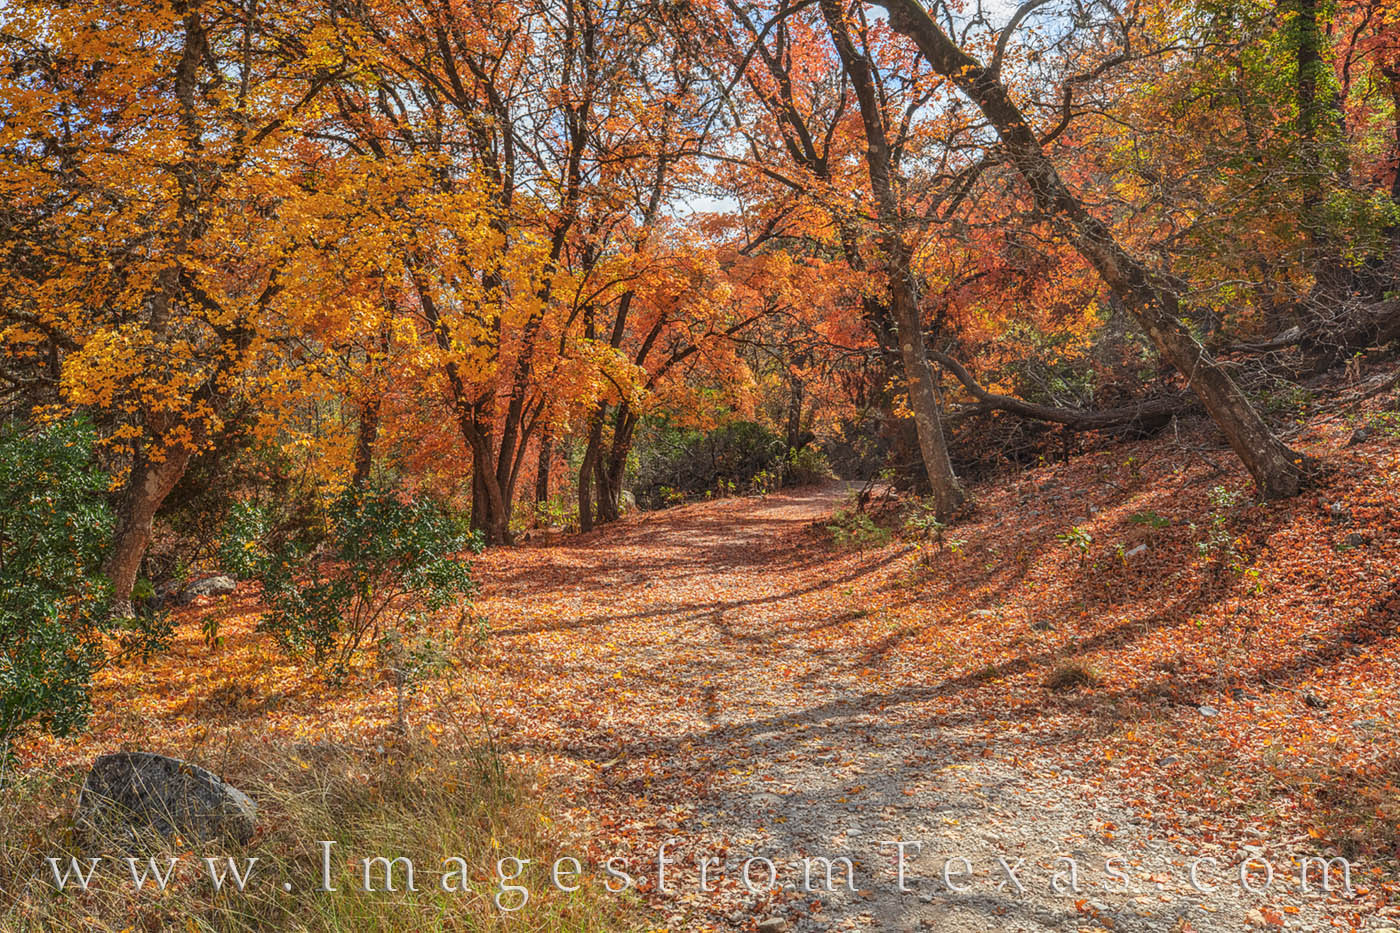 bigtooth maple, lost maples, fall, autumn, lost maples prints, hill country, hiking, walking, exploring, leaves, photo